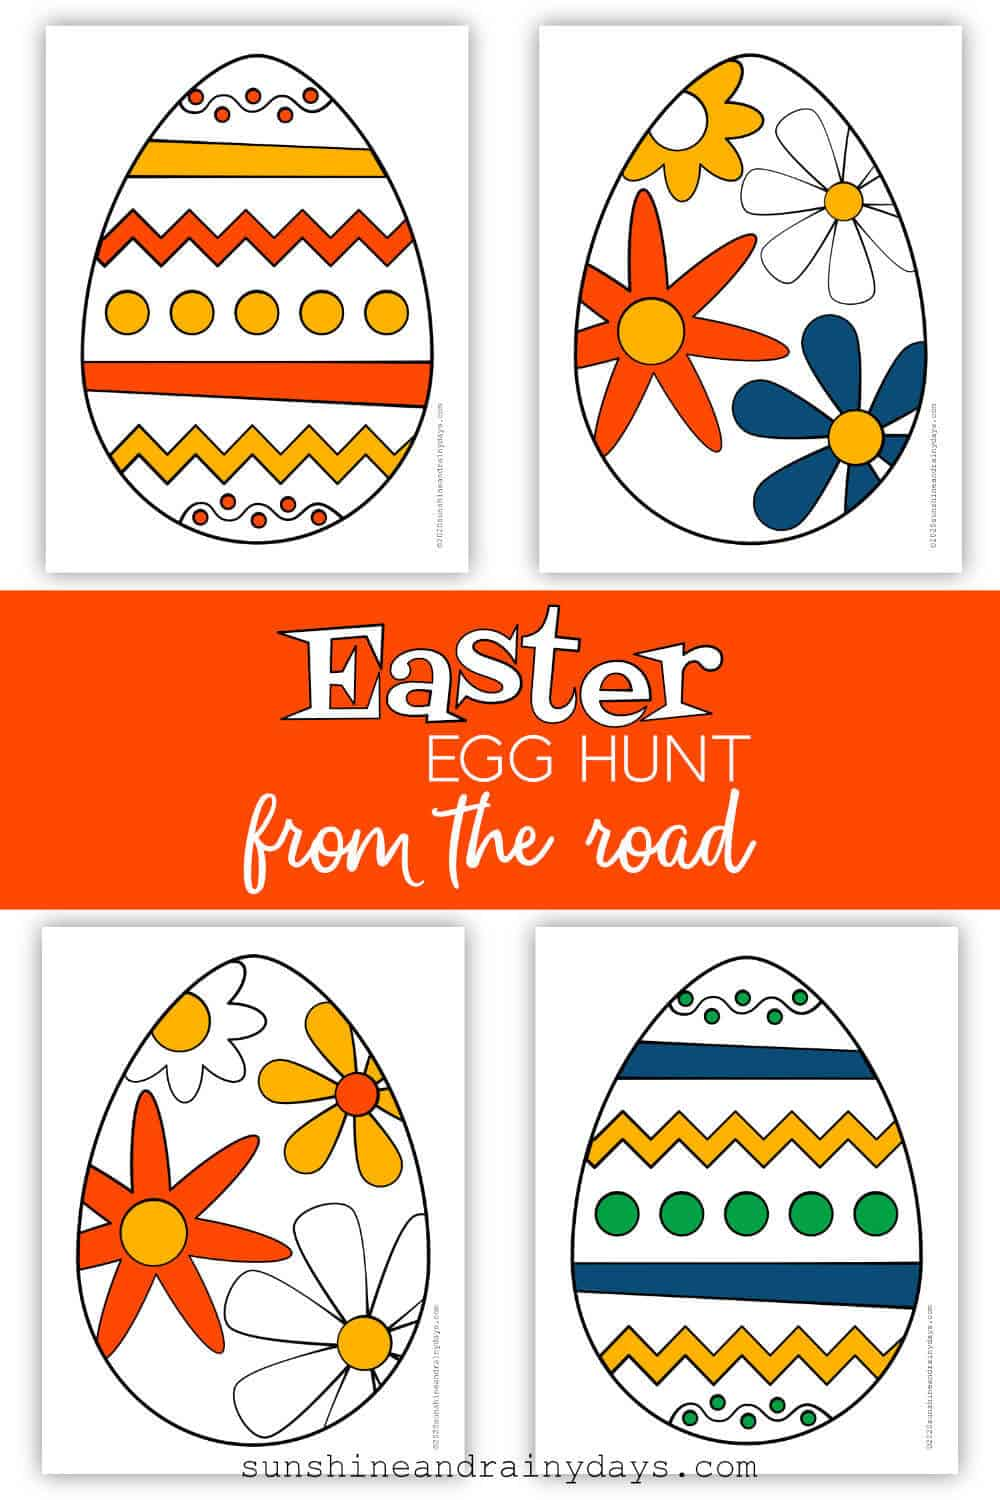 Easter Eggs To Cut And Place In A Visible Spot From The Road For An Easter Egg Hunt From The Road